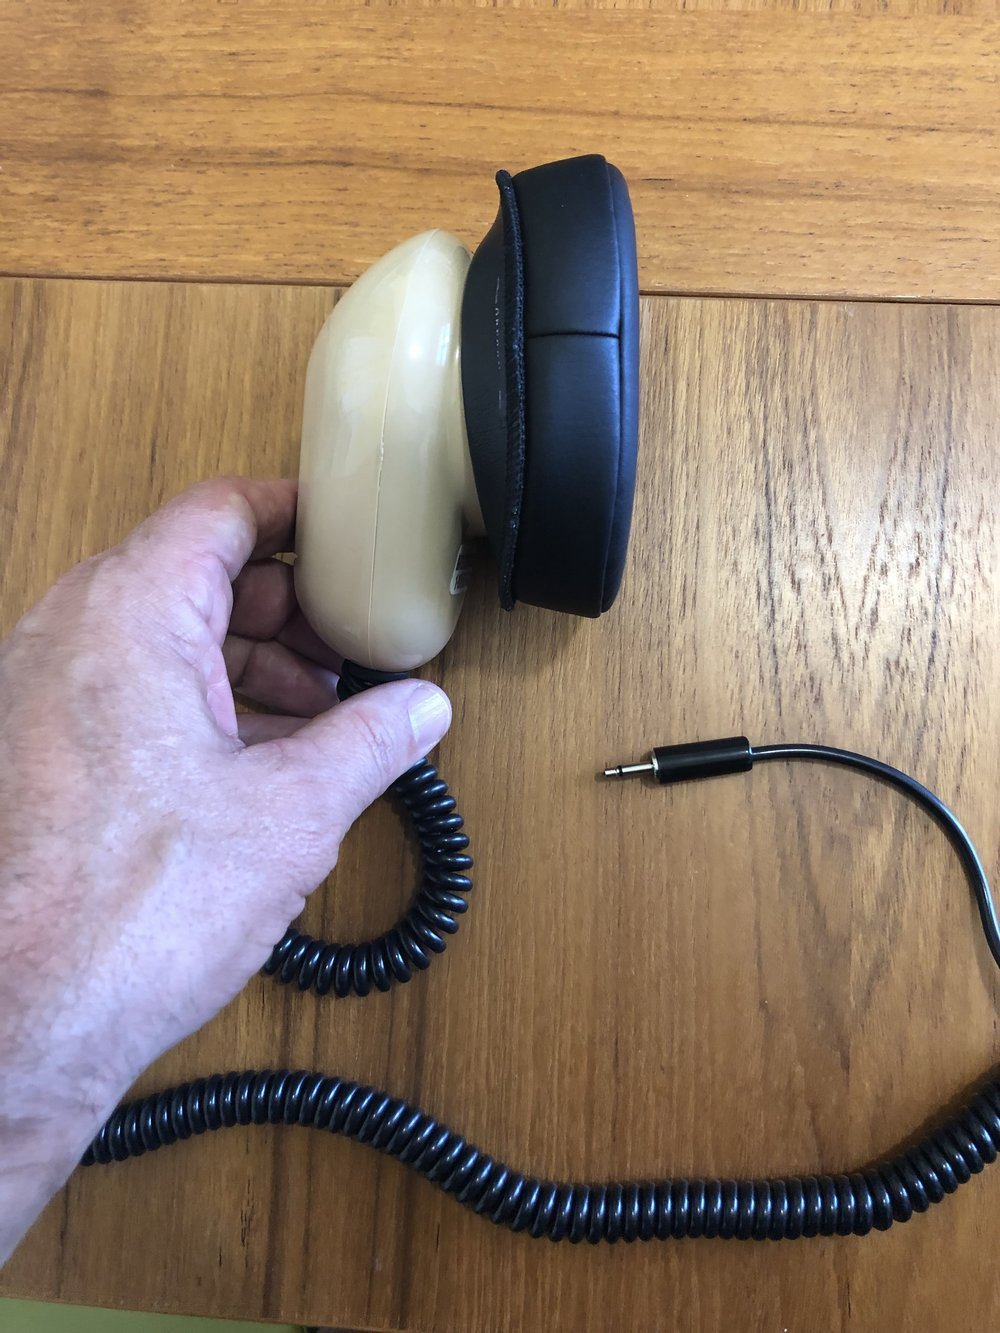 [Hand holding a stenographer's mask a mouth sized metal case with a flexible seal that fits around the mouth and contains a microphone. It is approximately the size of the hand.]